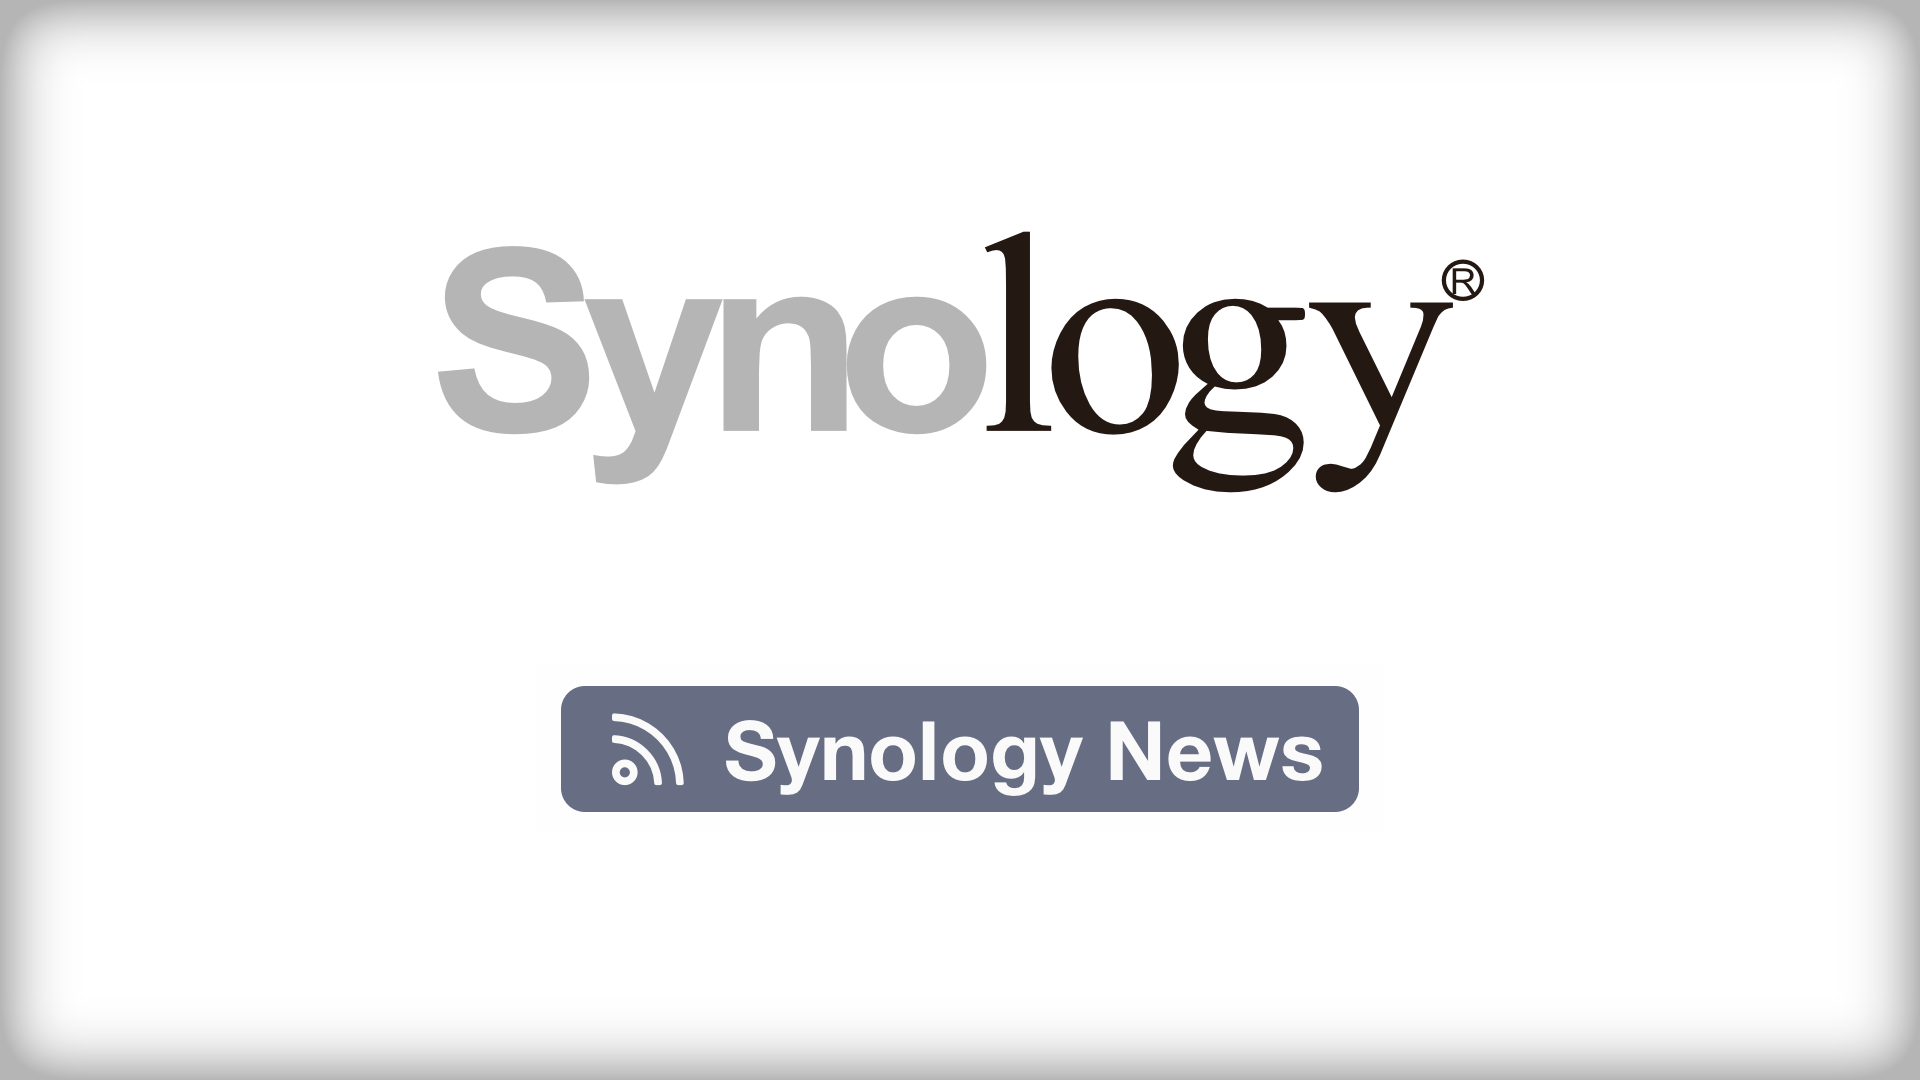 Synology News RSS